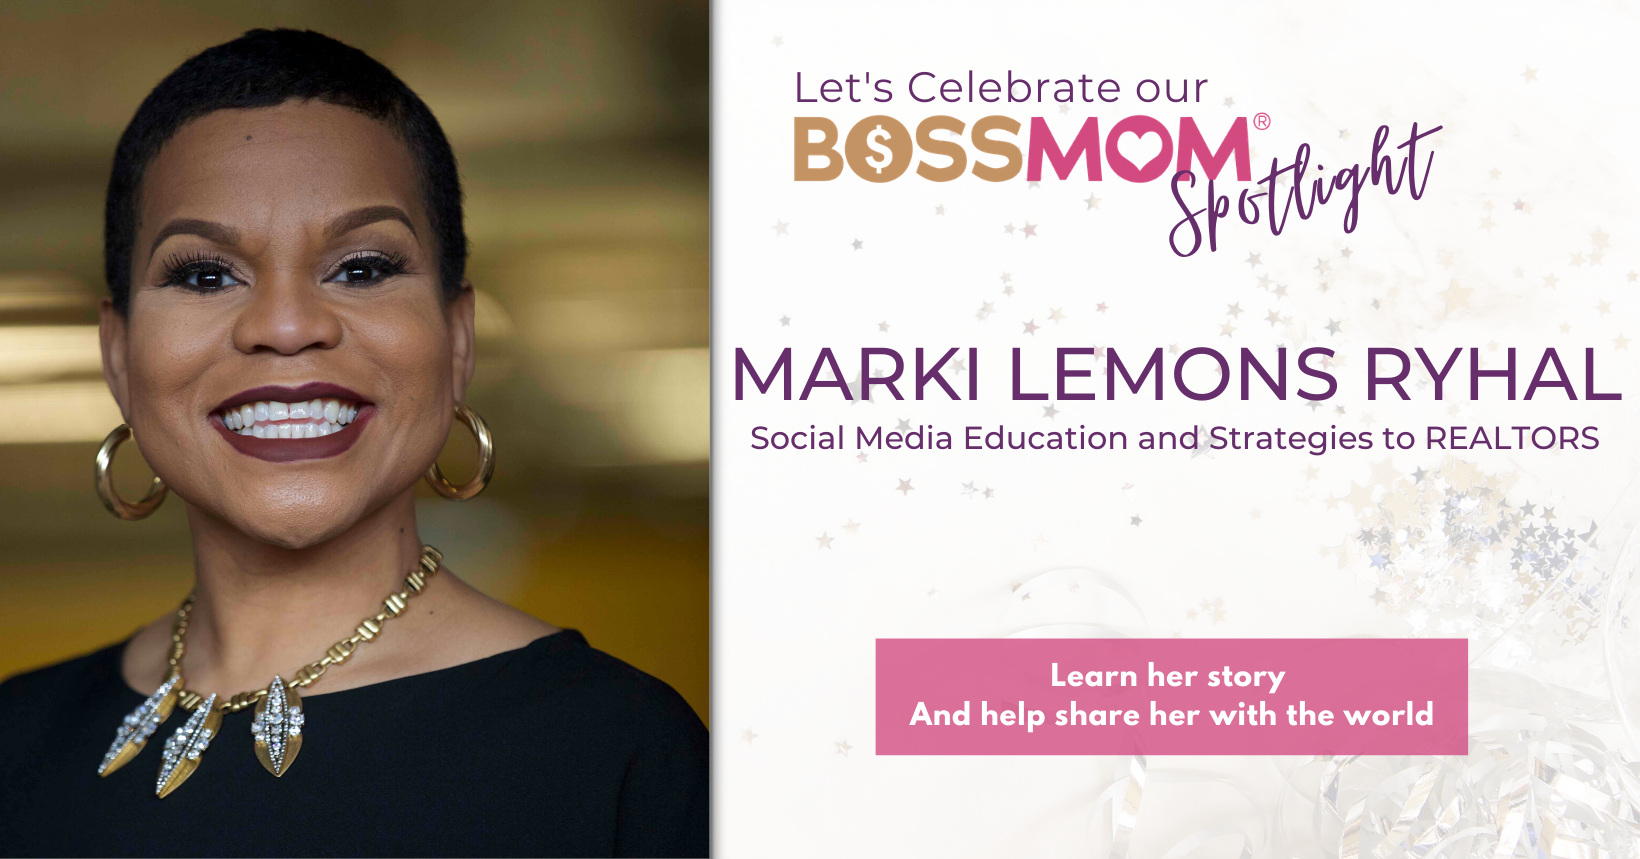 Boss Mom of the Week Template - Marki Lemons Rhyal (3)